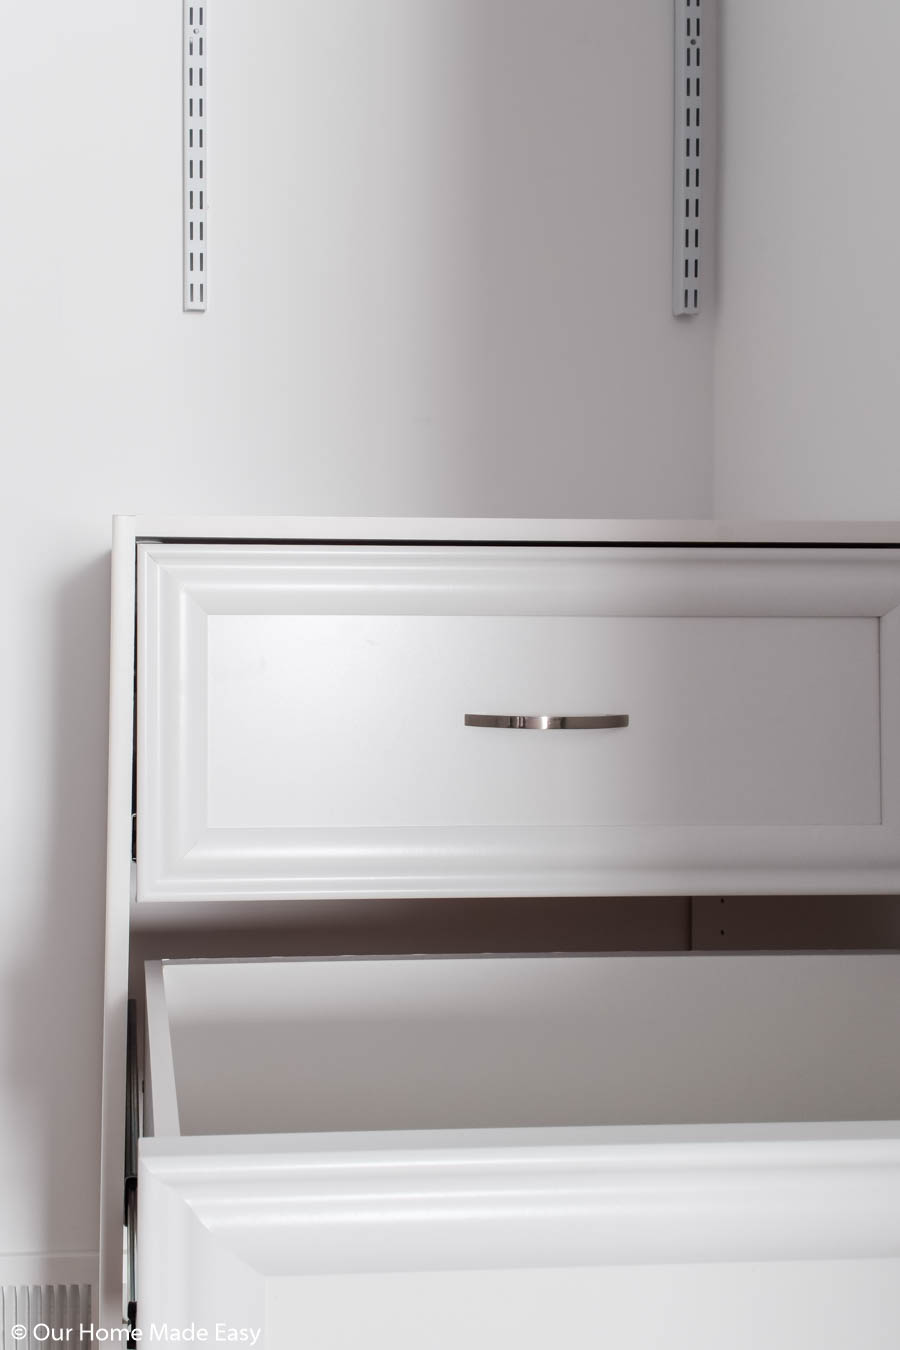 The key to organizing a small closet is to add more storage in convenient spaces